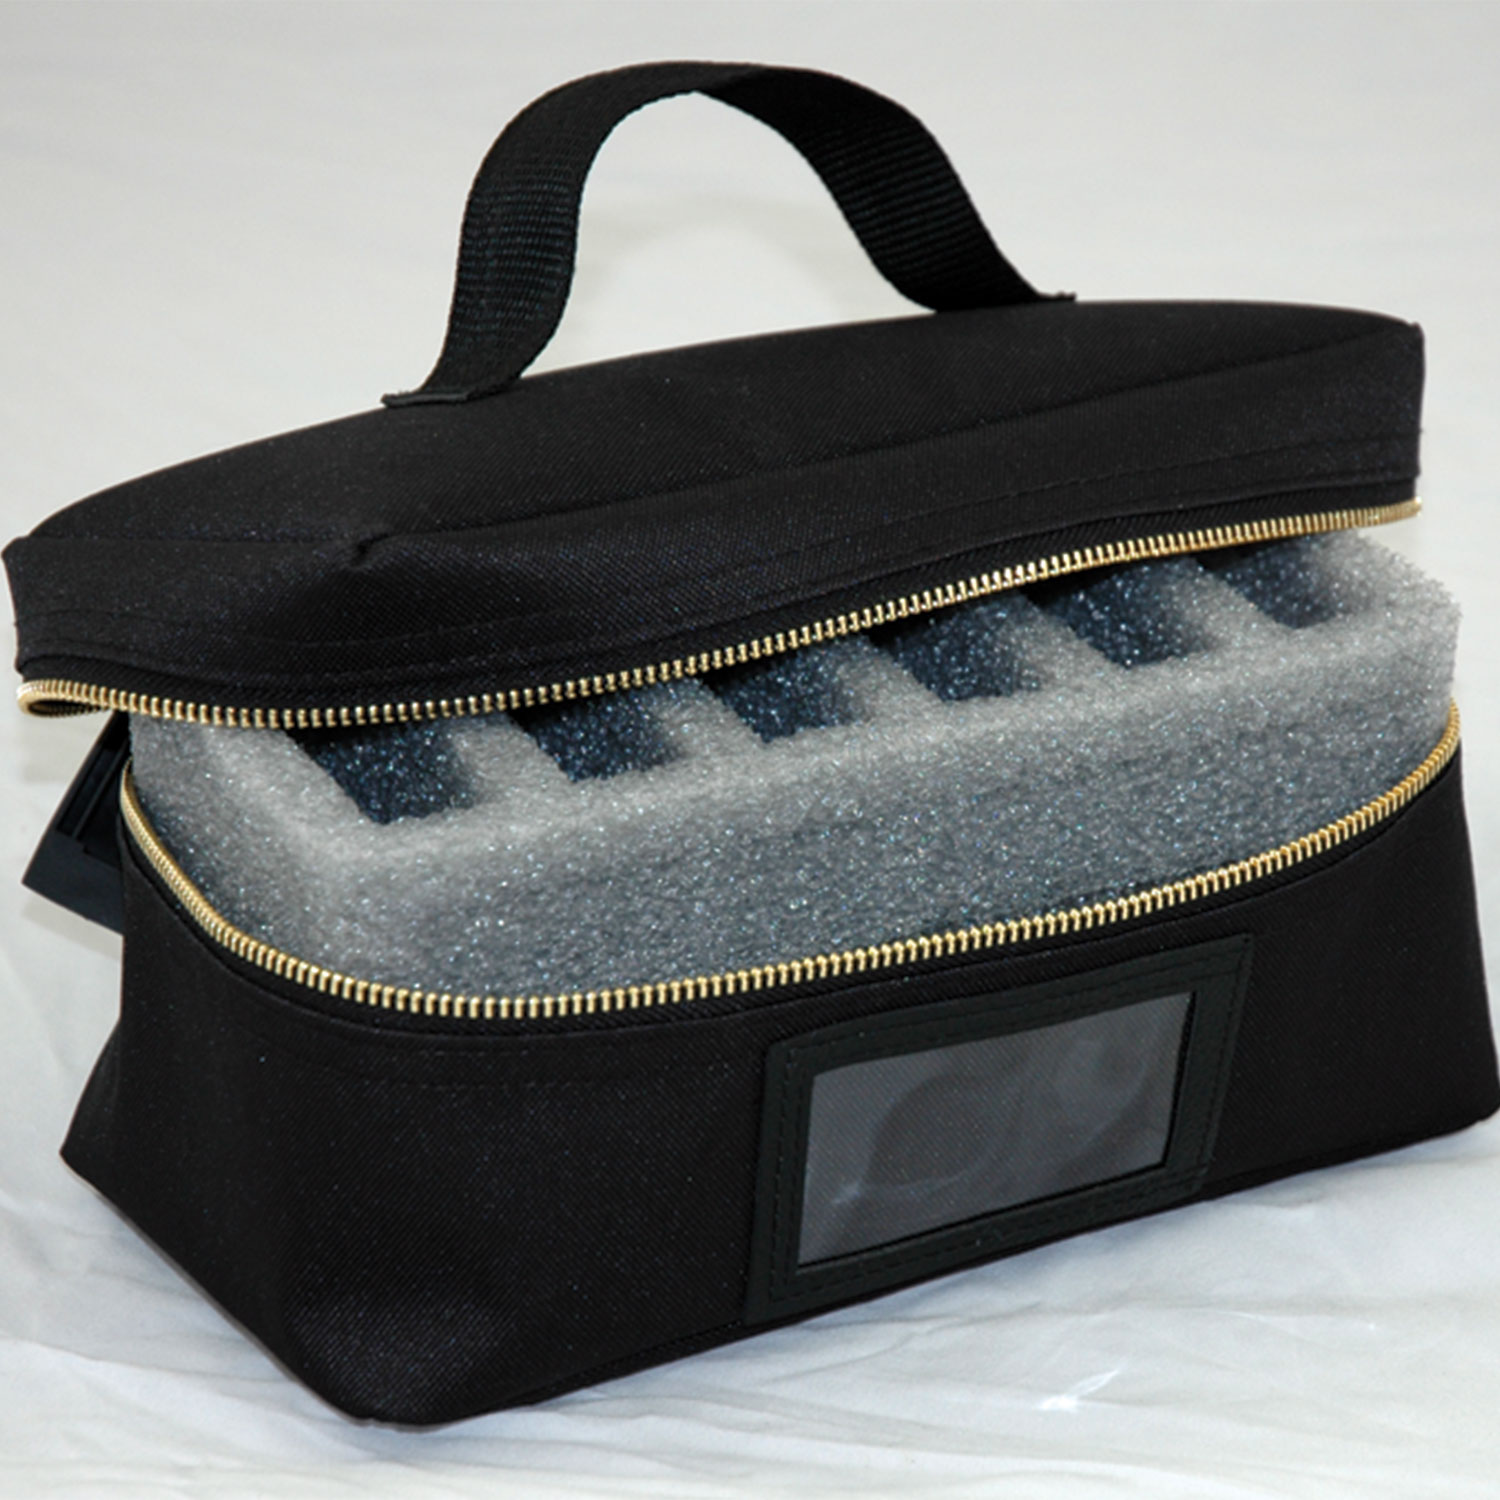 Keyless-Security-Bag-for-PEB-Modules